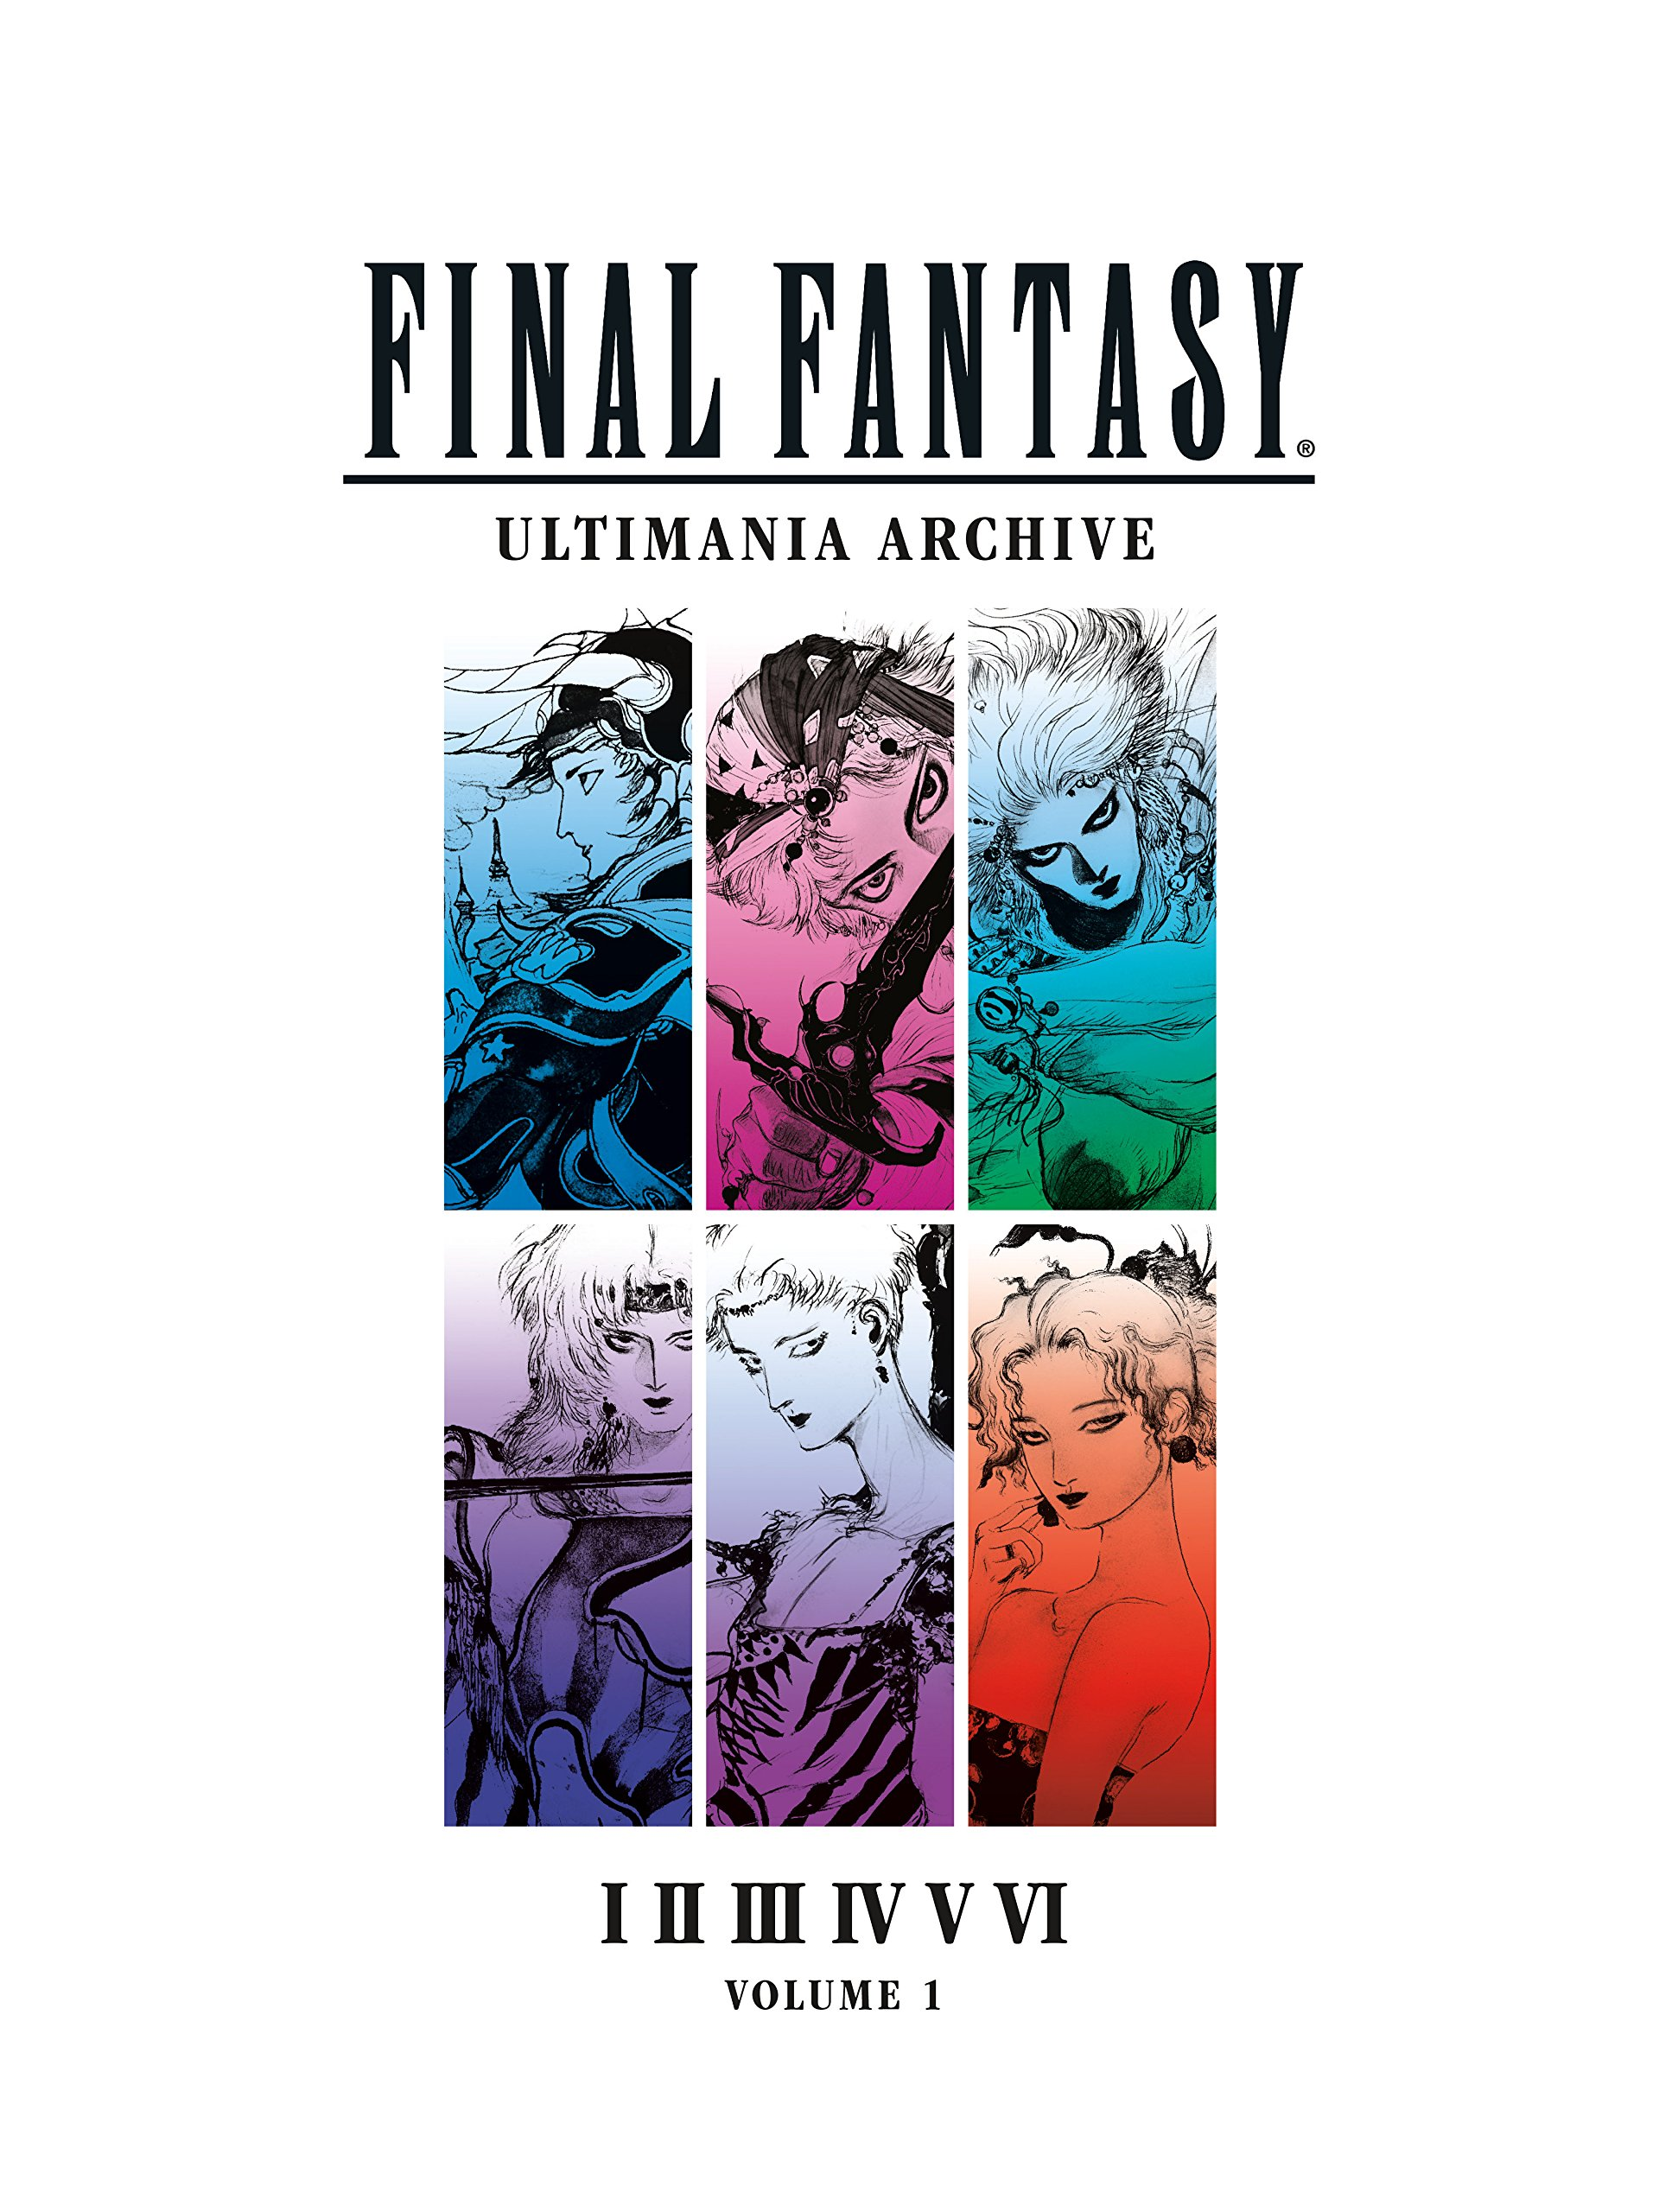 Image OfFinal Fantasy Ultimania Archive Volume 1